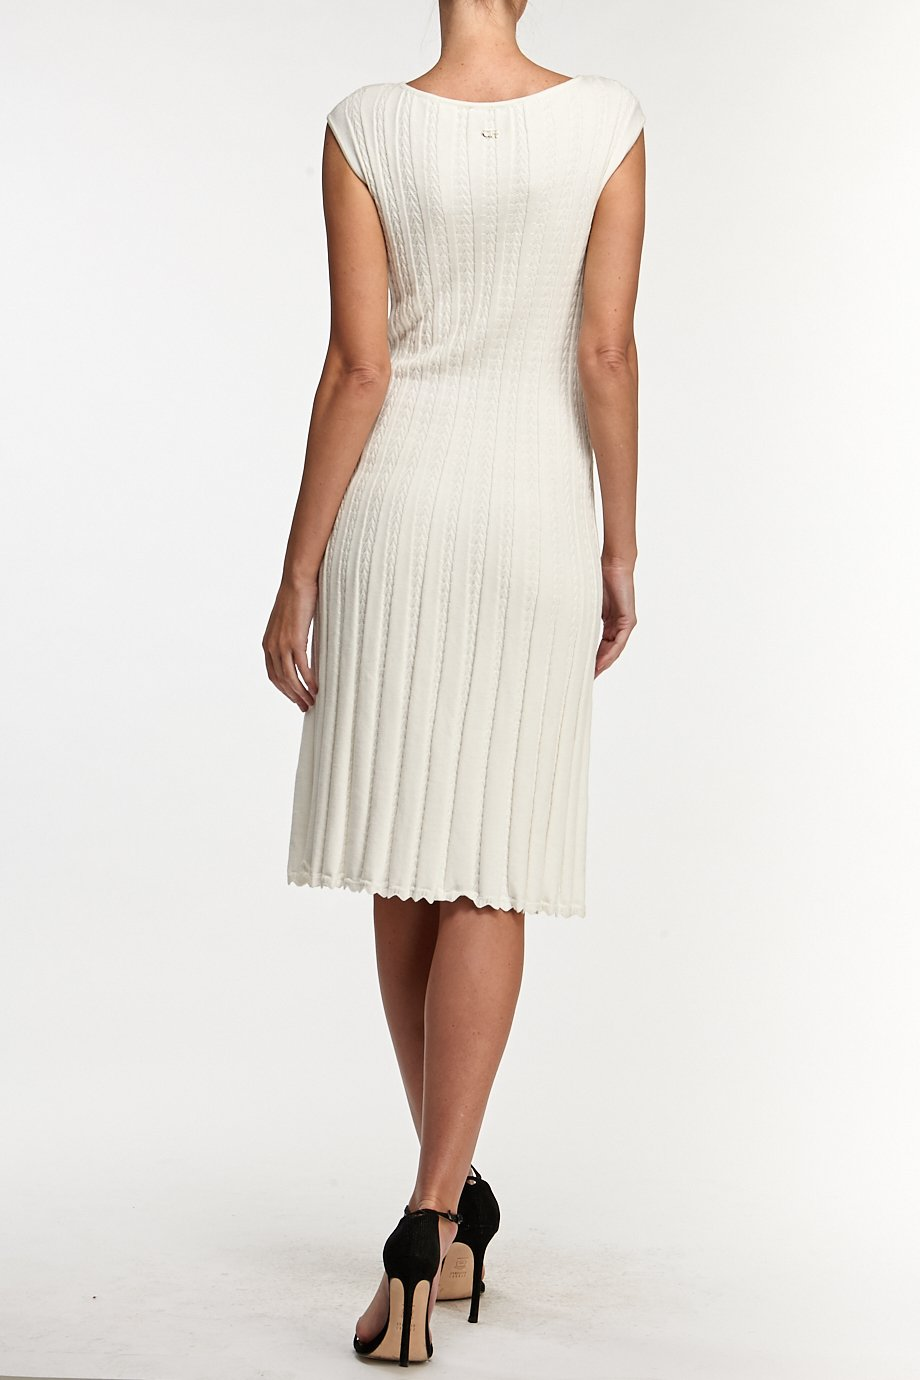 Carolina Herrera  Casual White Ribbed Knit Cocktail Dress